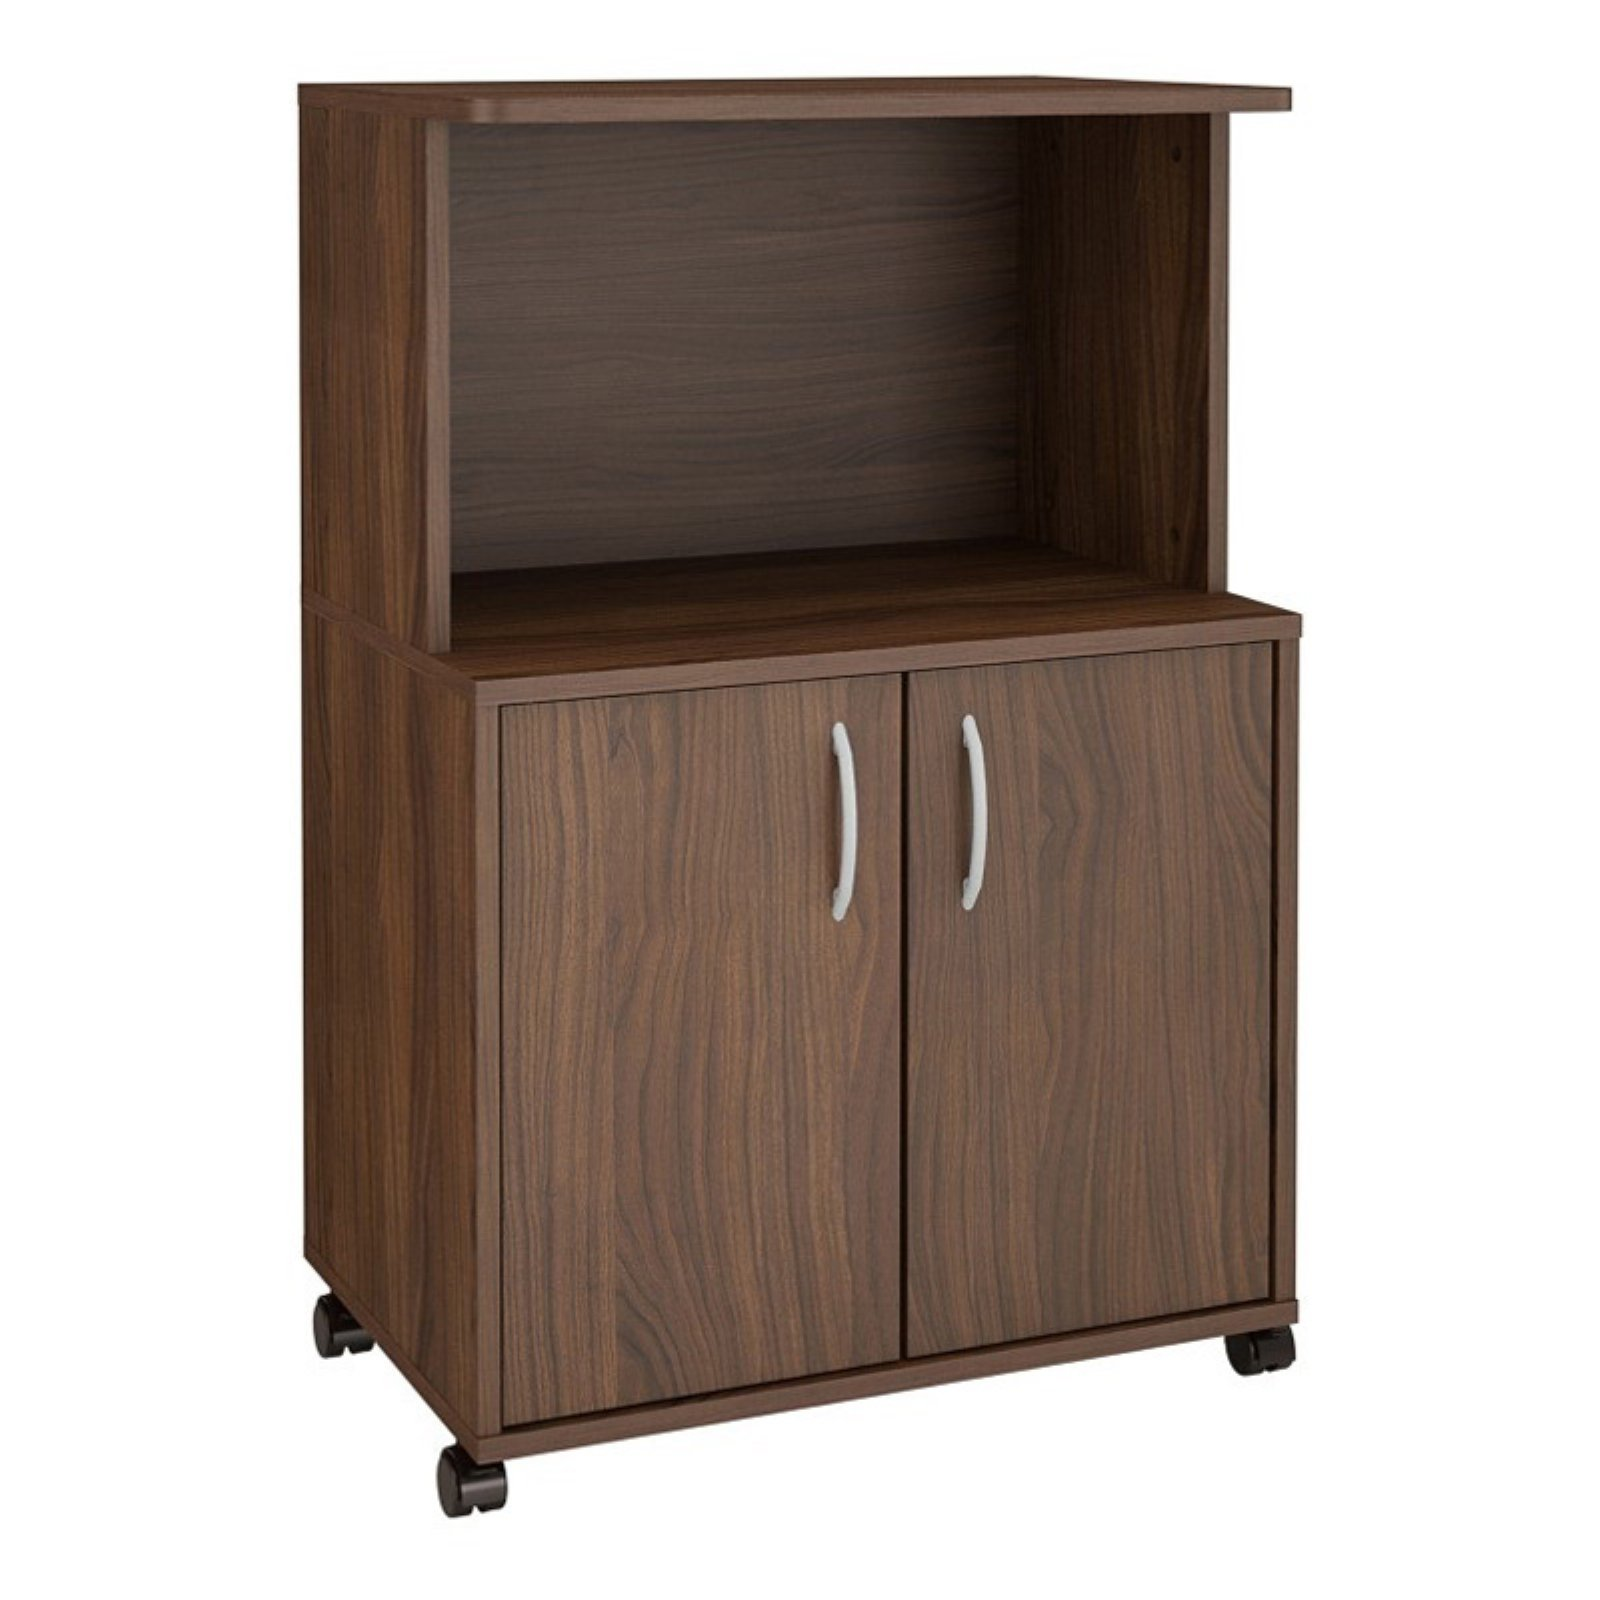 Nexera 2-Door Microwave Cart, Walnut